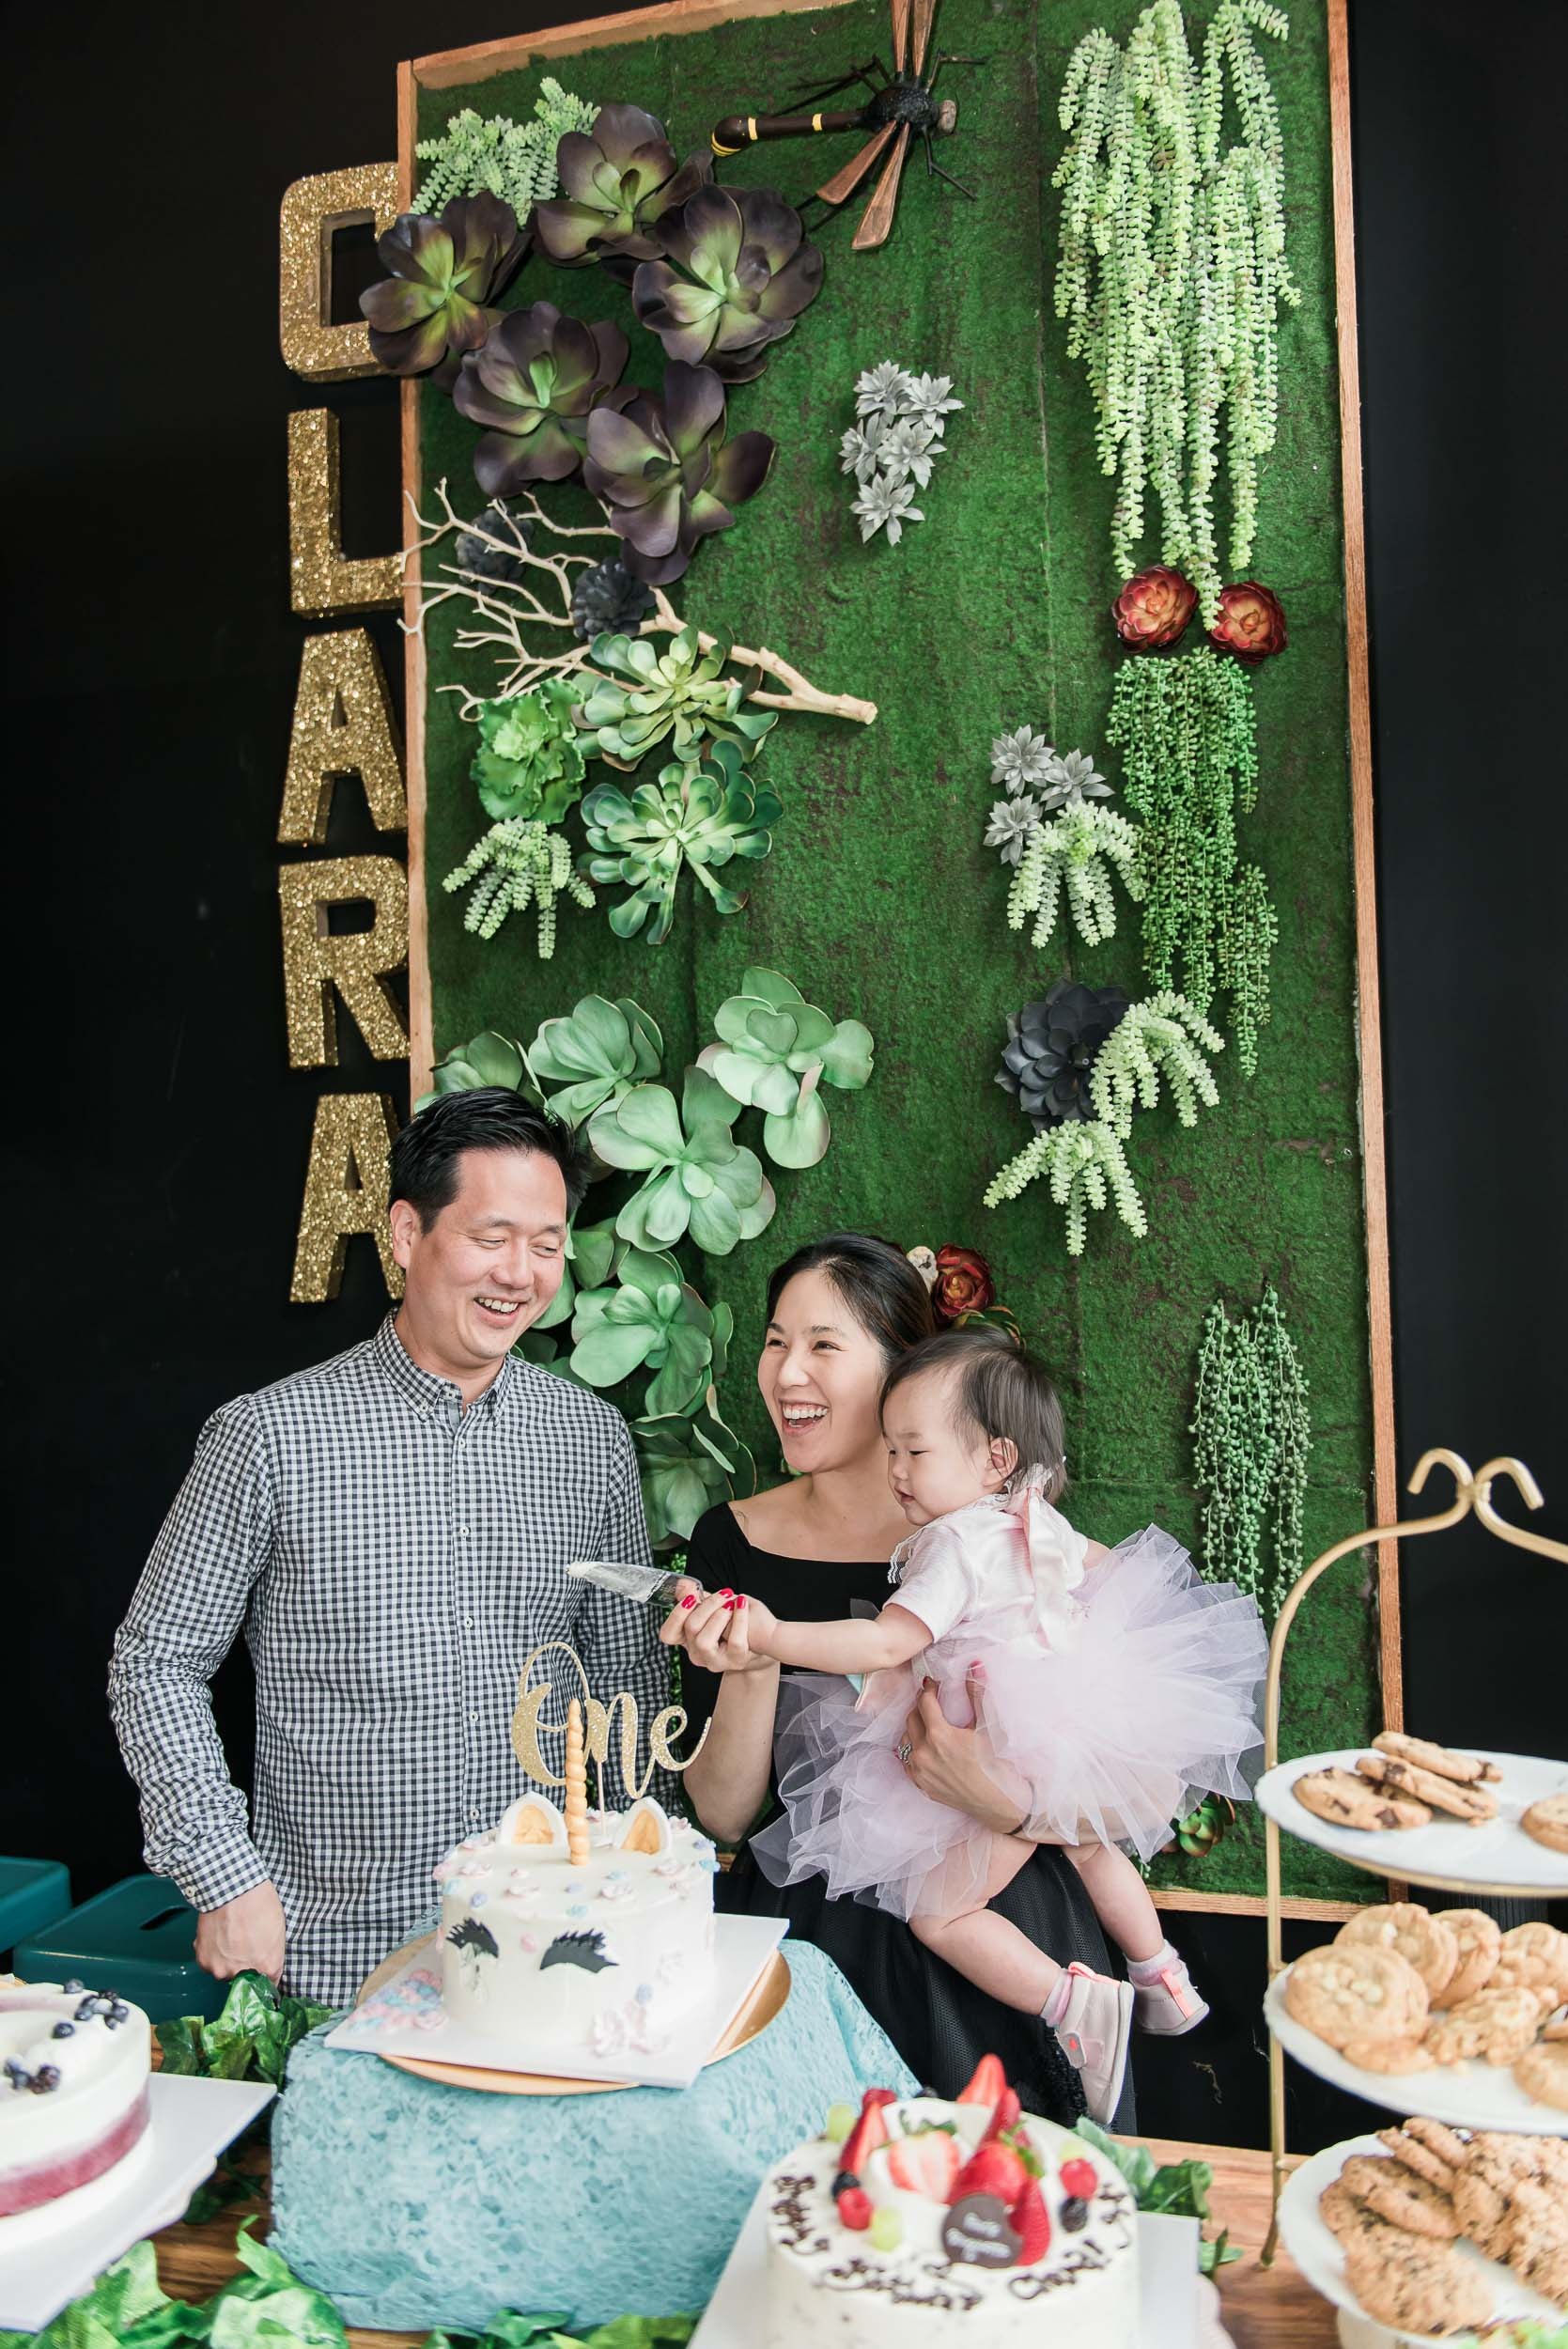 Bryan-Miraflor-Photography-Clara-First-Birthday-Pavillion-Park-OC-20170226-0422.jpg